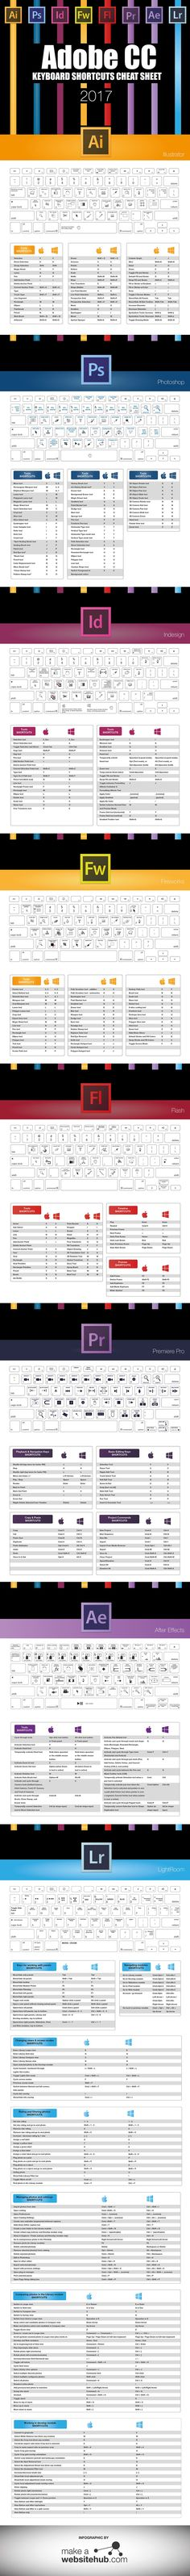 2017 Adobe Creative Cloud Keyboard Shortcuts Cheat Sheet #infographic http://www.coolenews.com/best-gaming-keyboards-2017-10-best-keyboards-gaming/